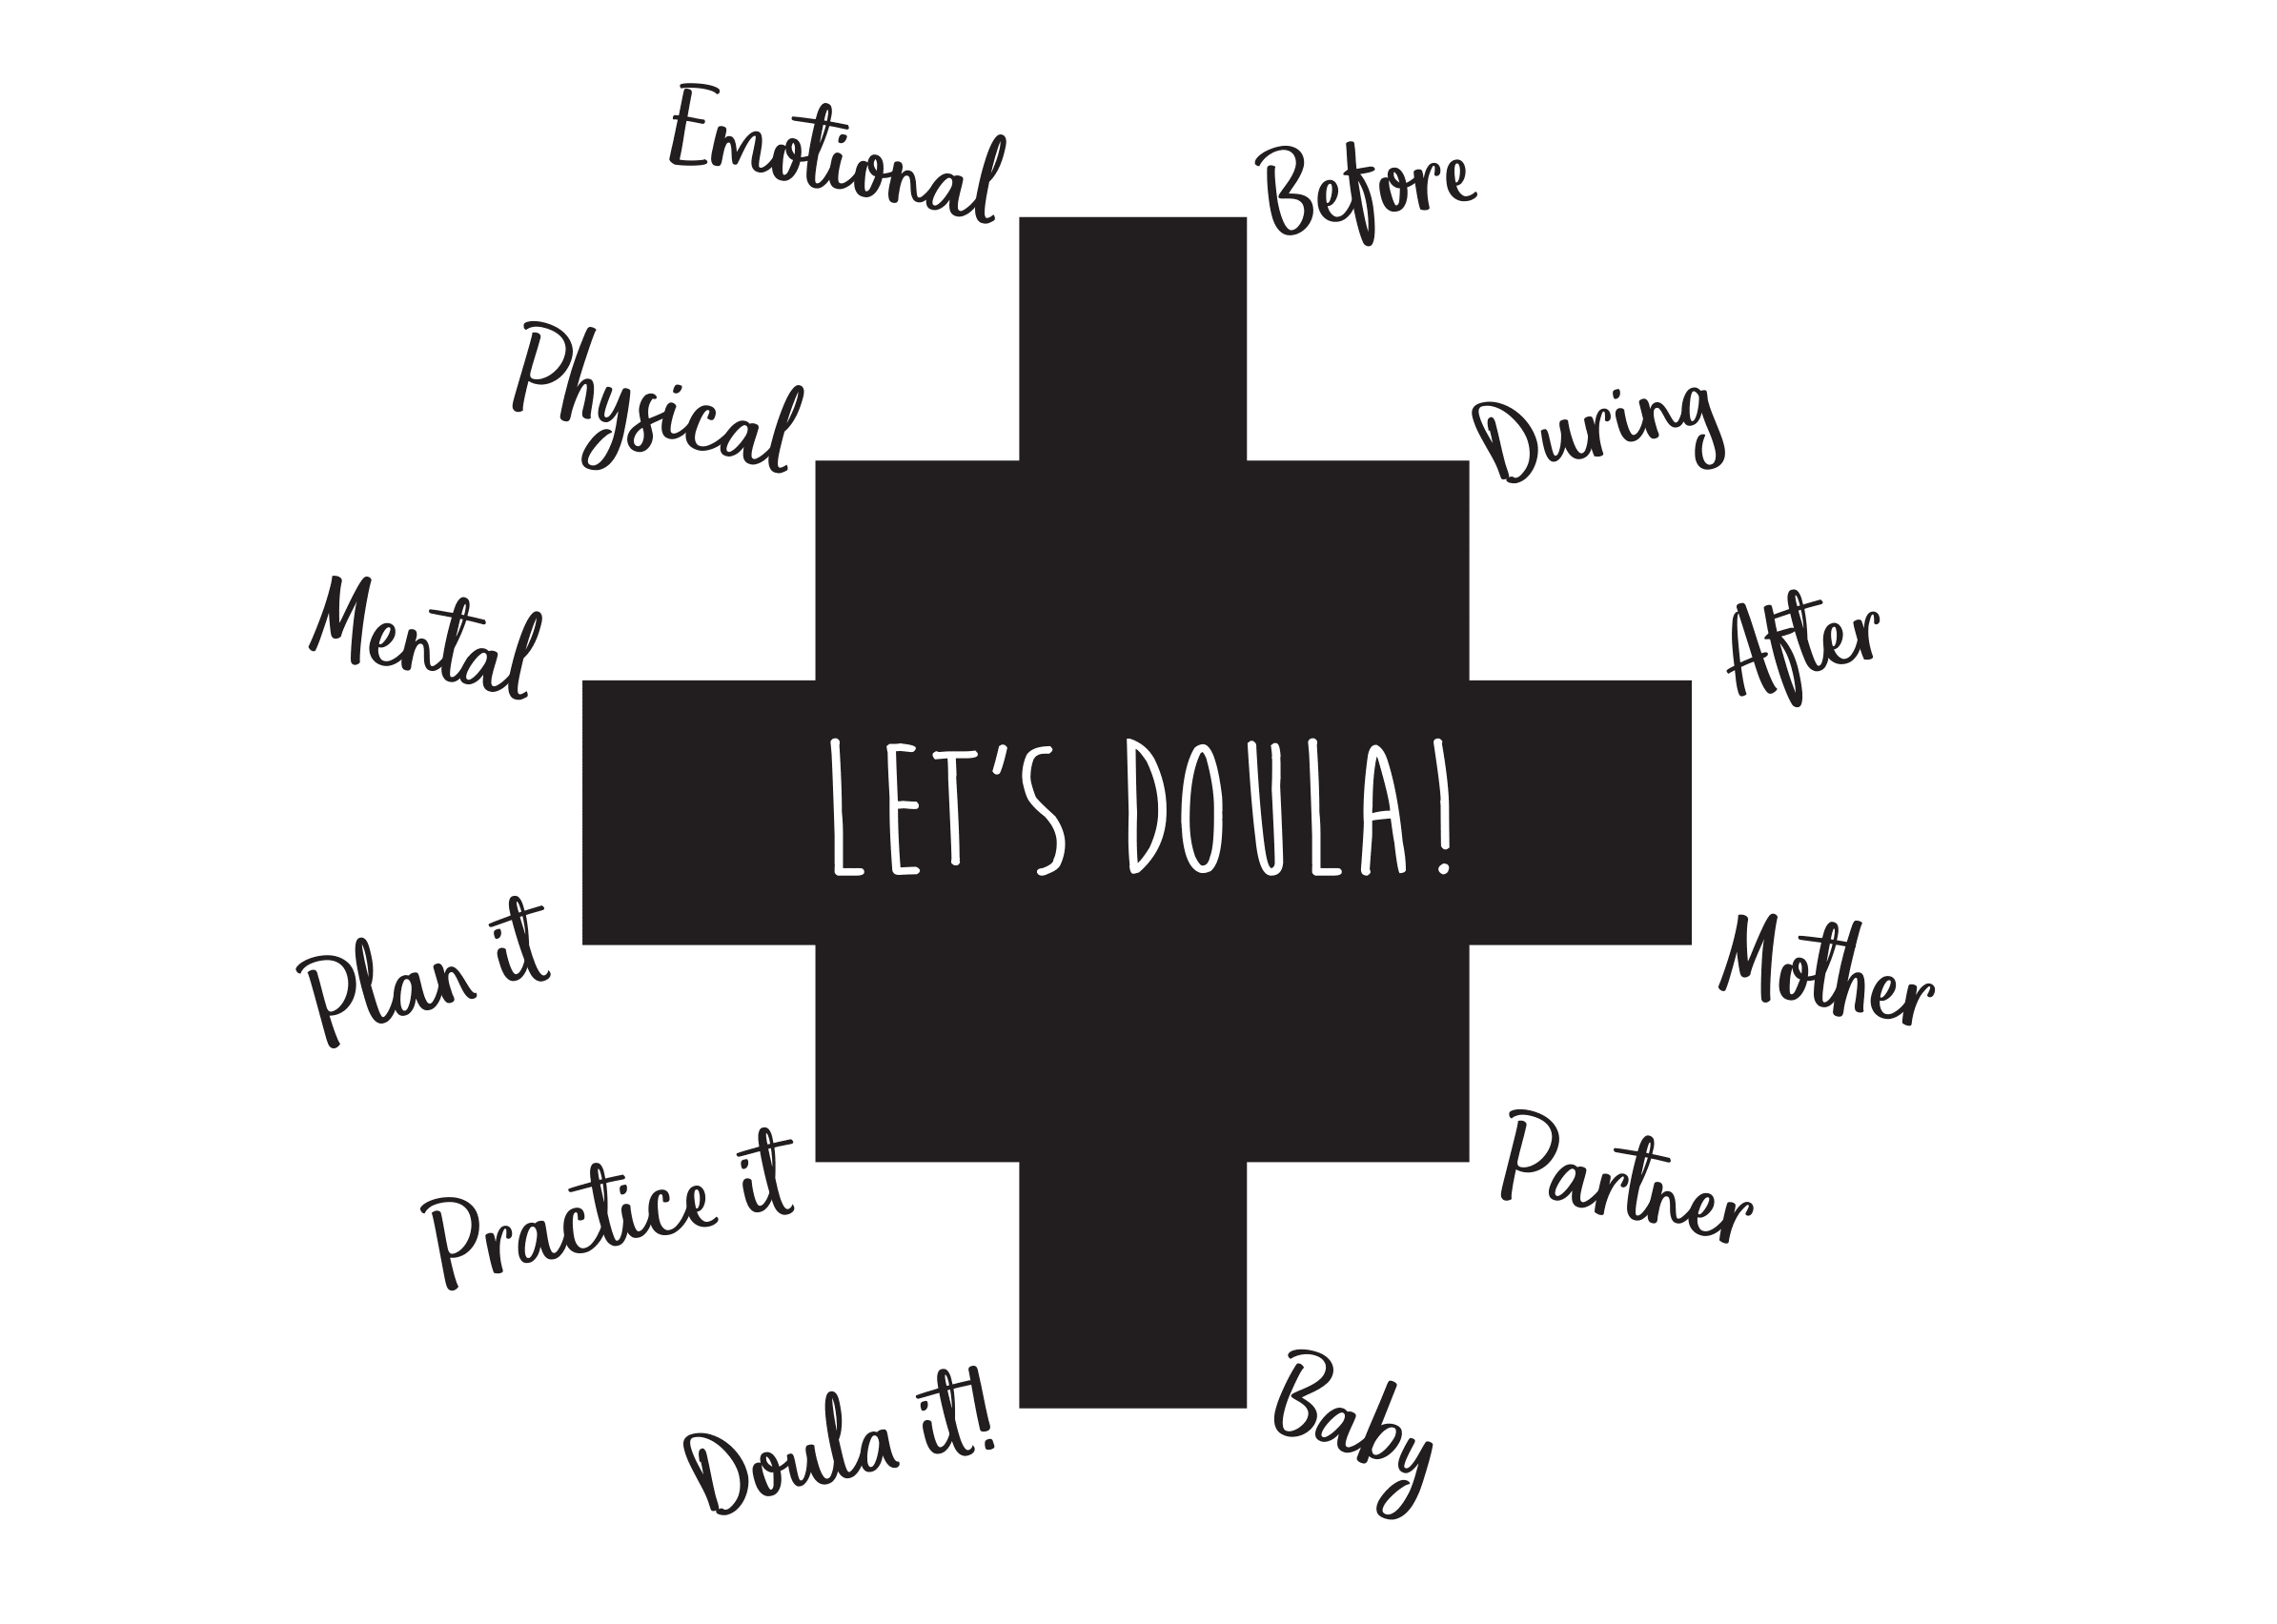 About Lets Doula